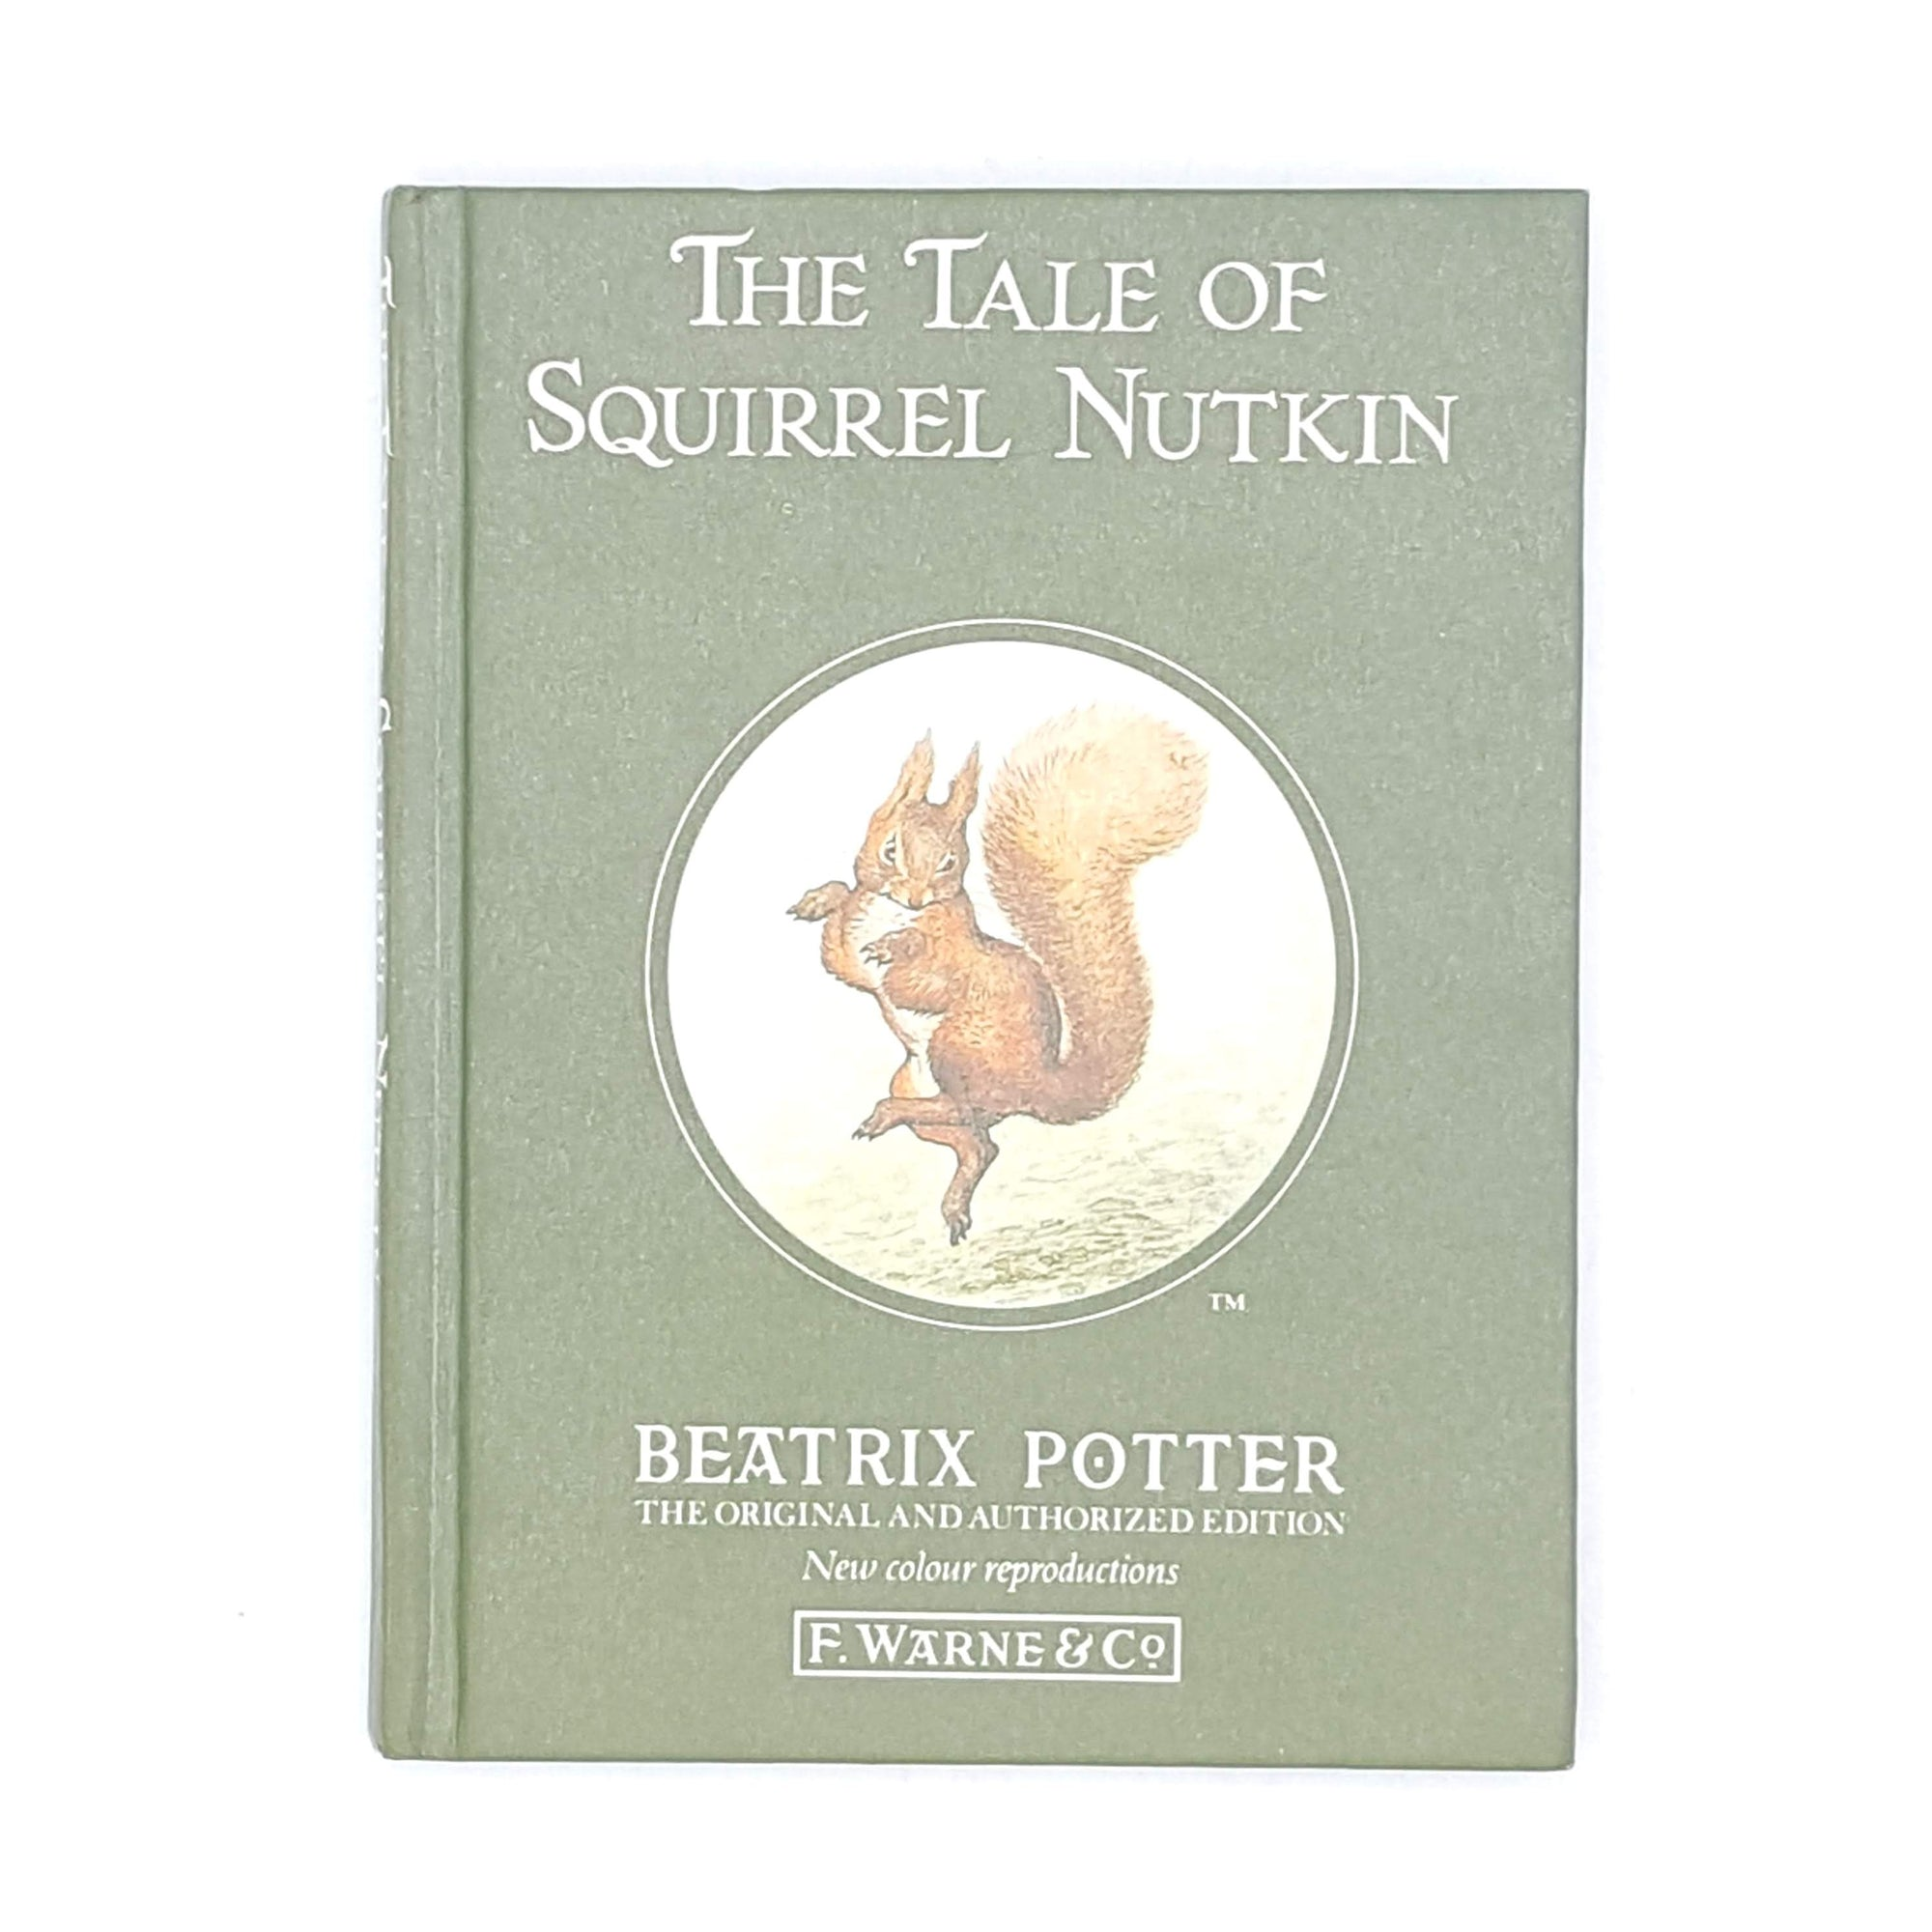 Beatrix Potter's The Tale of Squirrel Nutkin, green cover